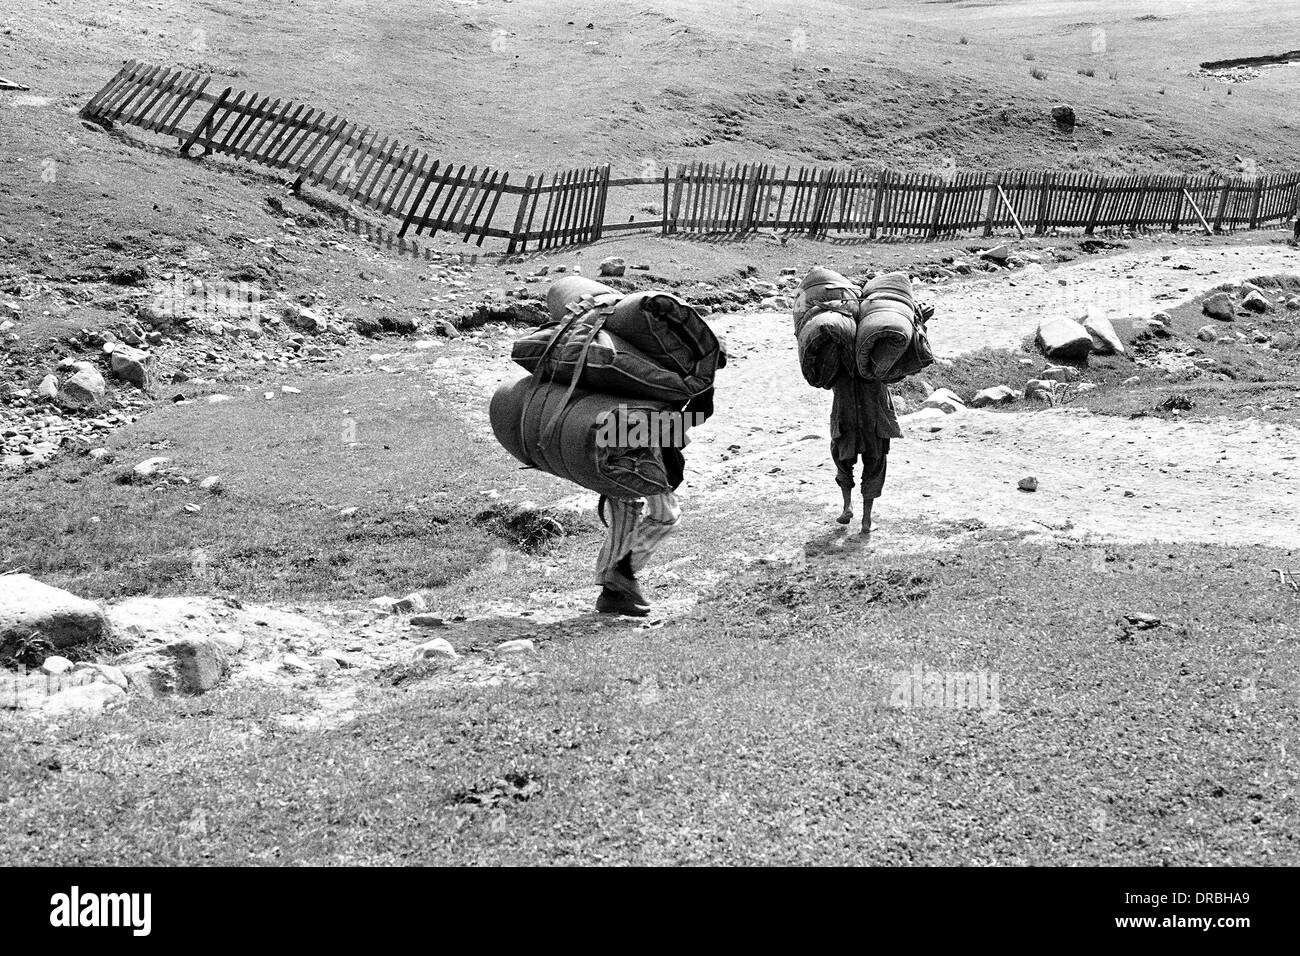 Two porters carrying heavy luggage, Gulmarg, Jammu and Kashmir, India, 1971 - Stock Image